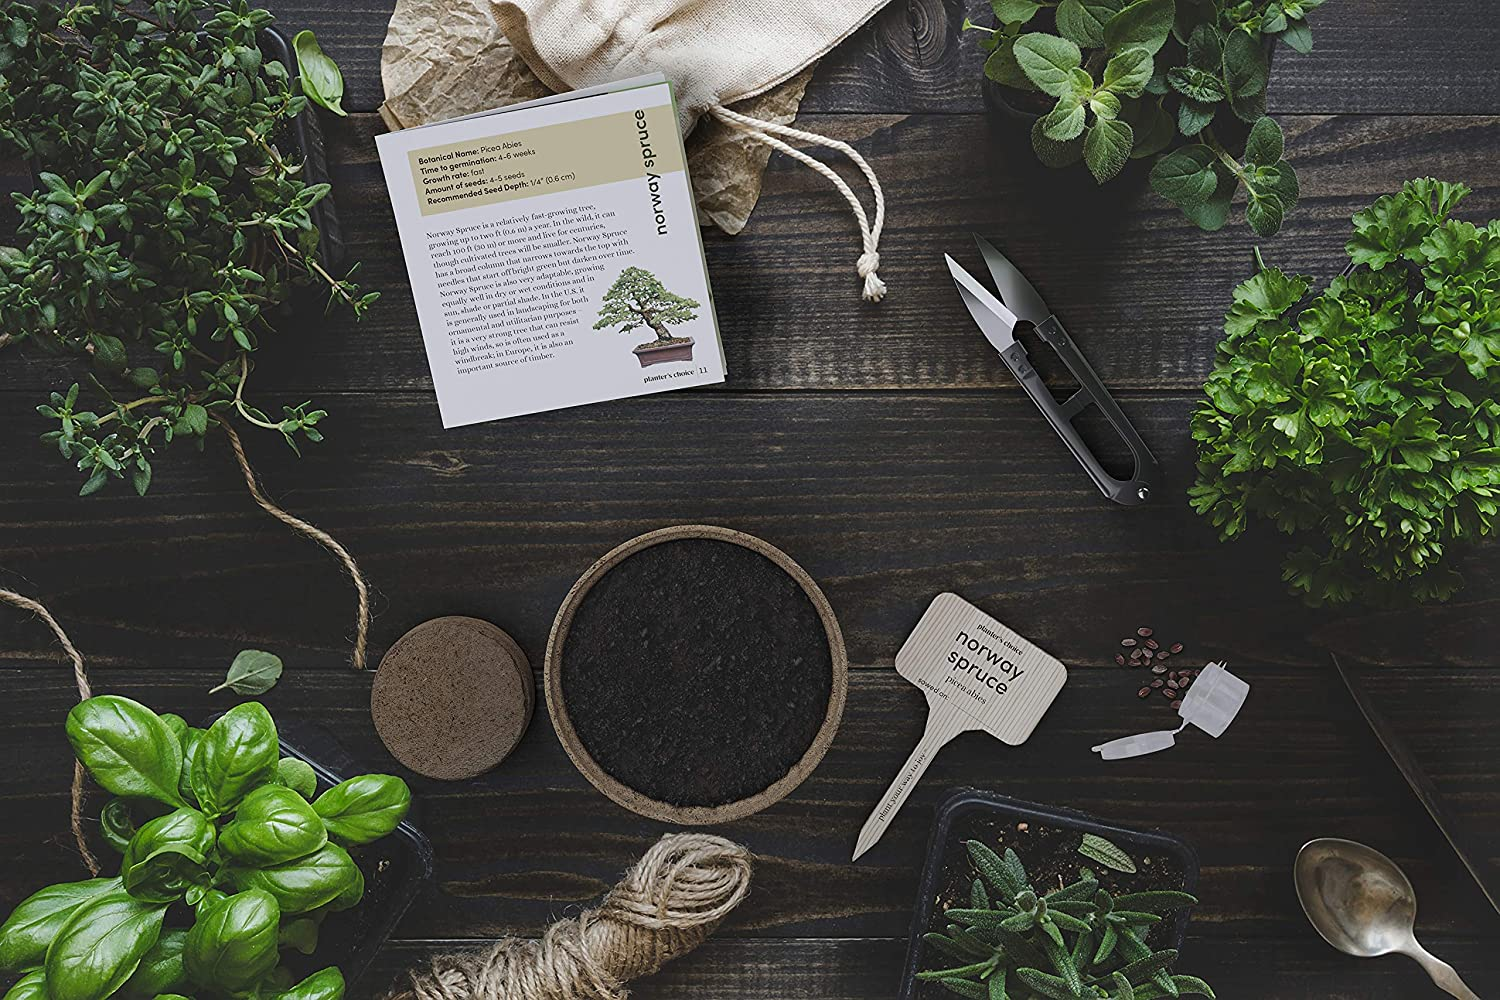 Elements of a bonsai tree kit scattered across a wood surface